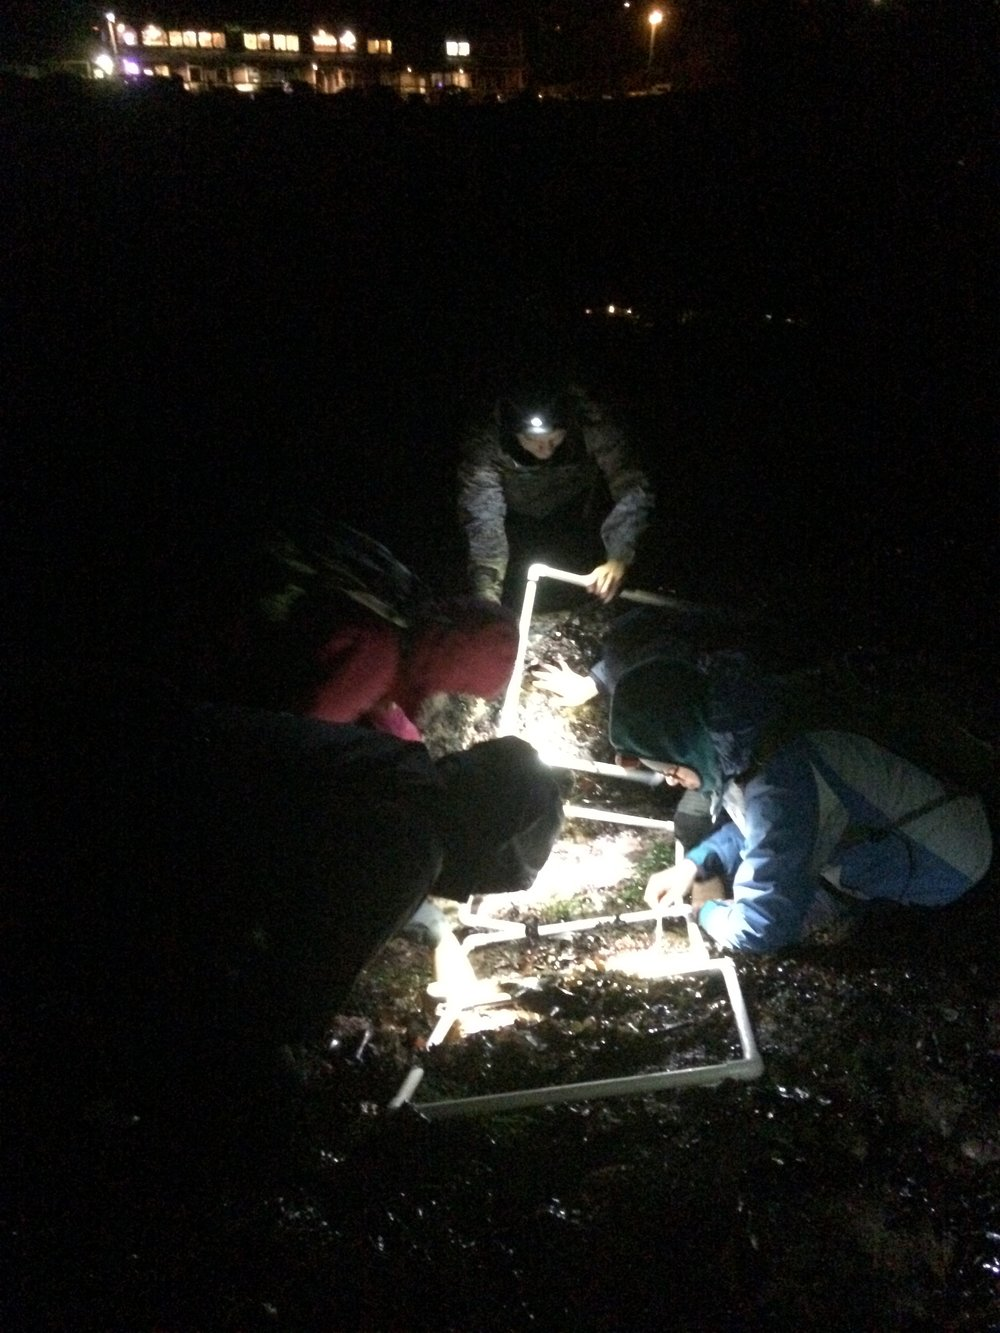 And even in the darkest night, the Dawson lab was recording sea star counts in the tidepools. Check out the UCCGC Ochre sea star project here < https://ucconservationgenomics.eeb.ucla.edu/projects/ochre-seastar/ >